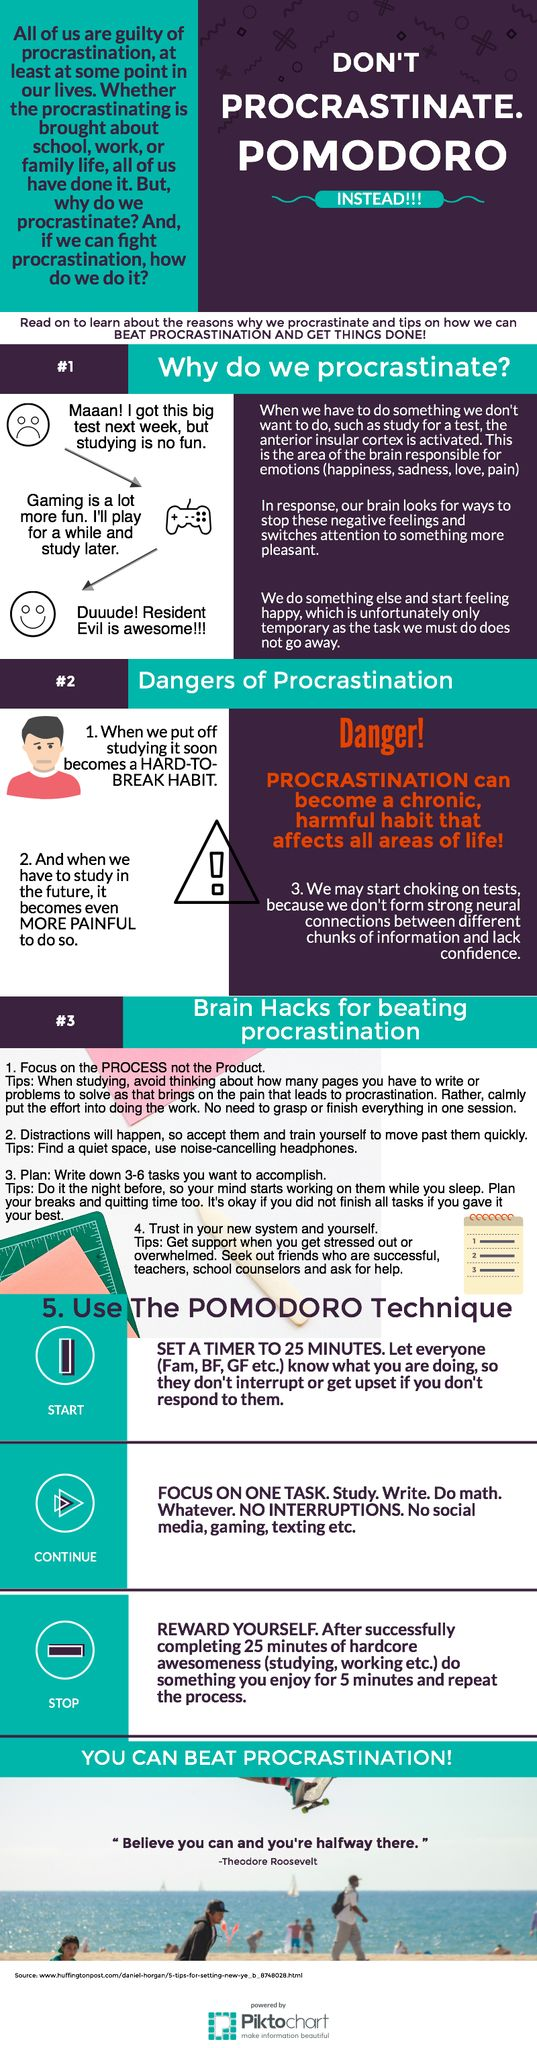 iTeach and iLearn Fighting Procrastination 230 best